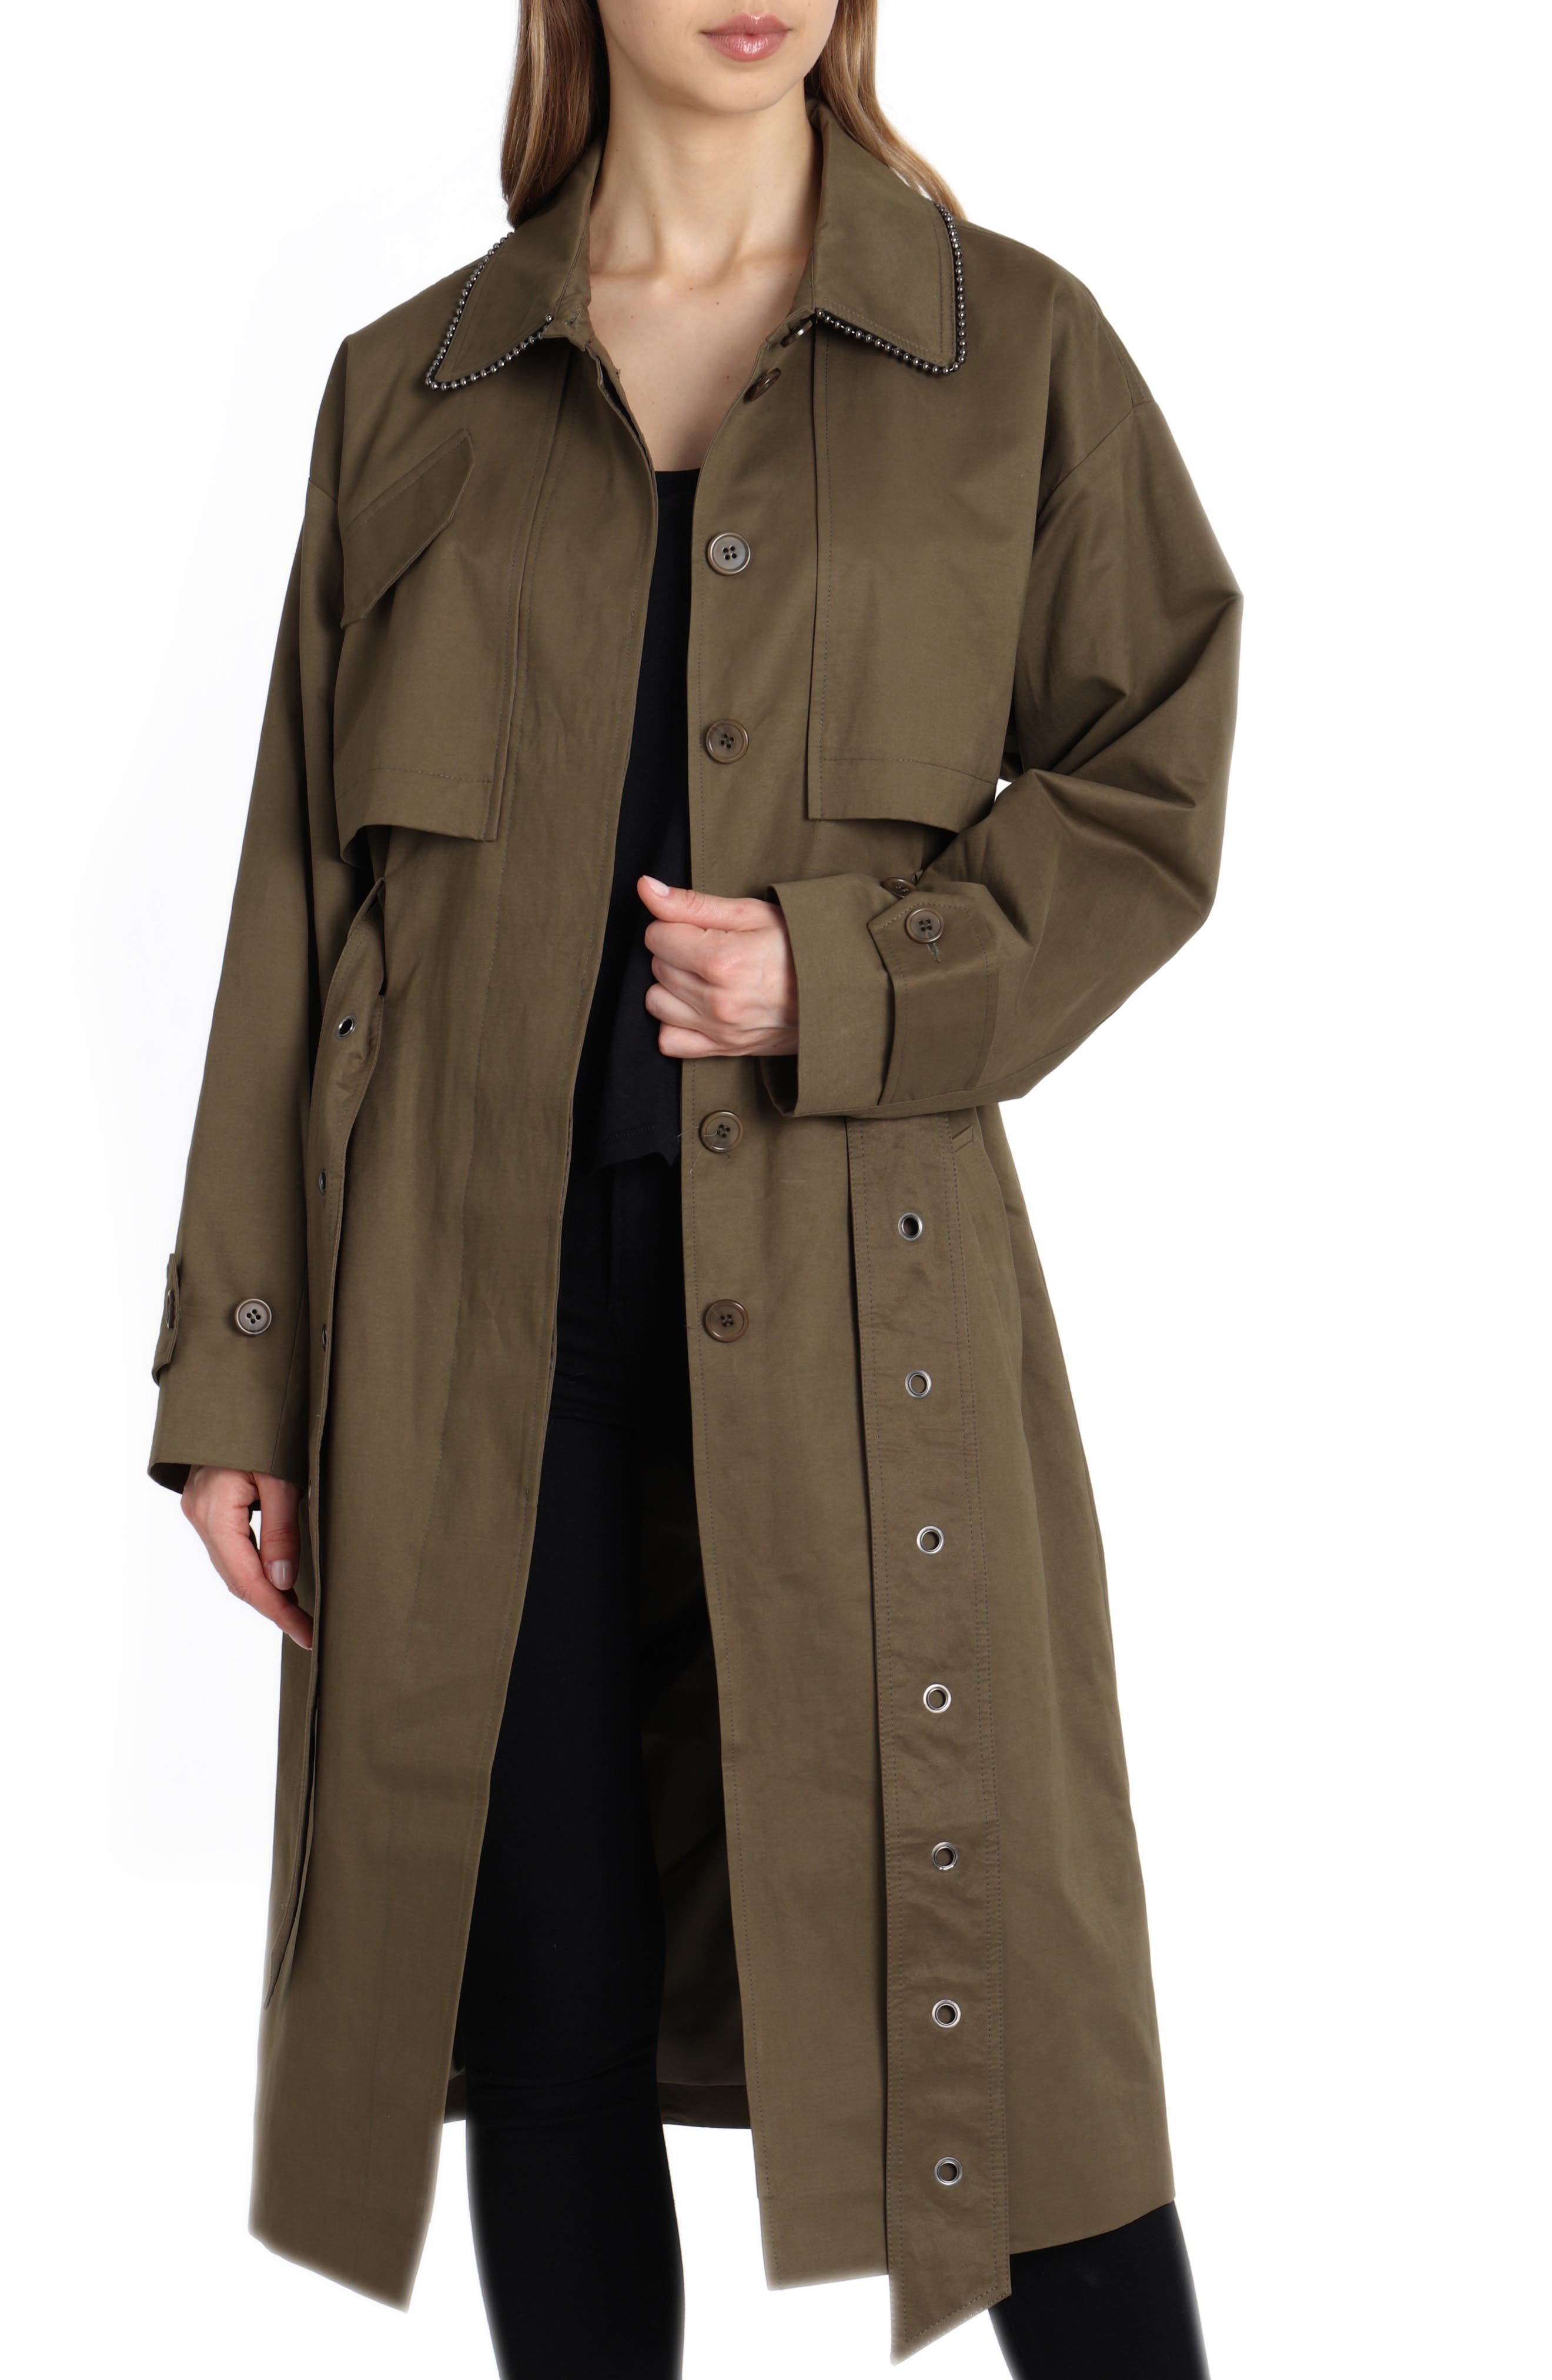 Badgley Mischka Cotton Blend Utility Trench Coat,                         Main,                         color, 301